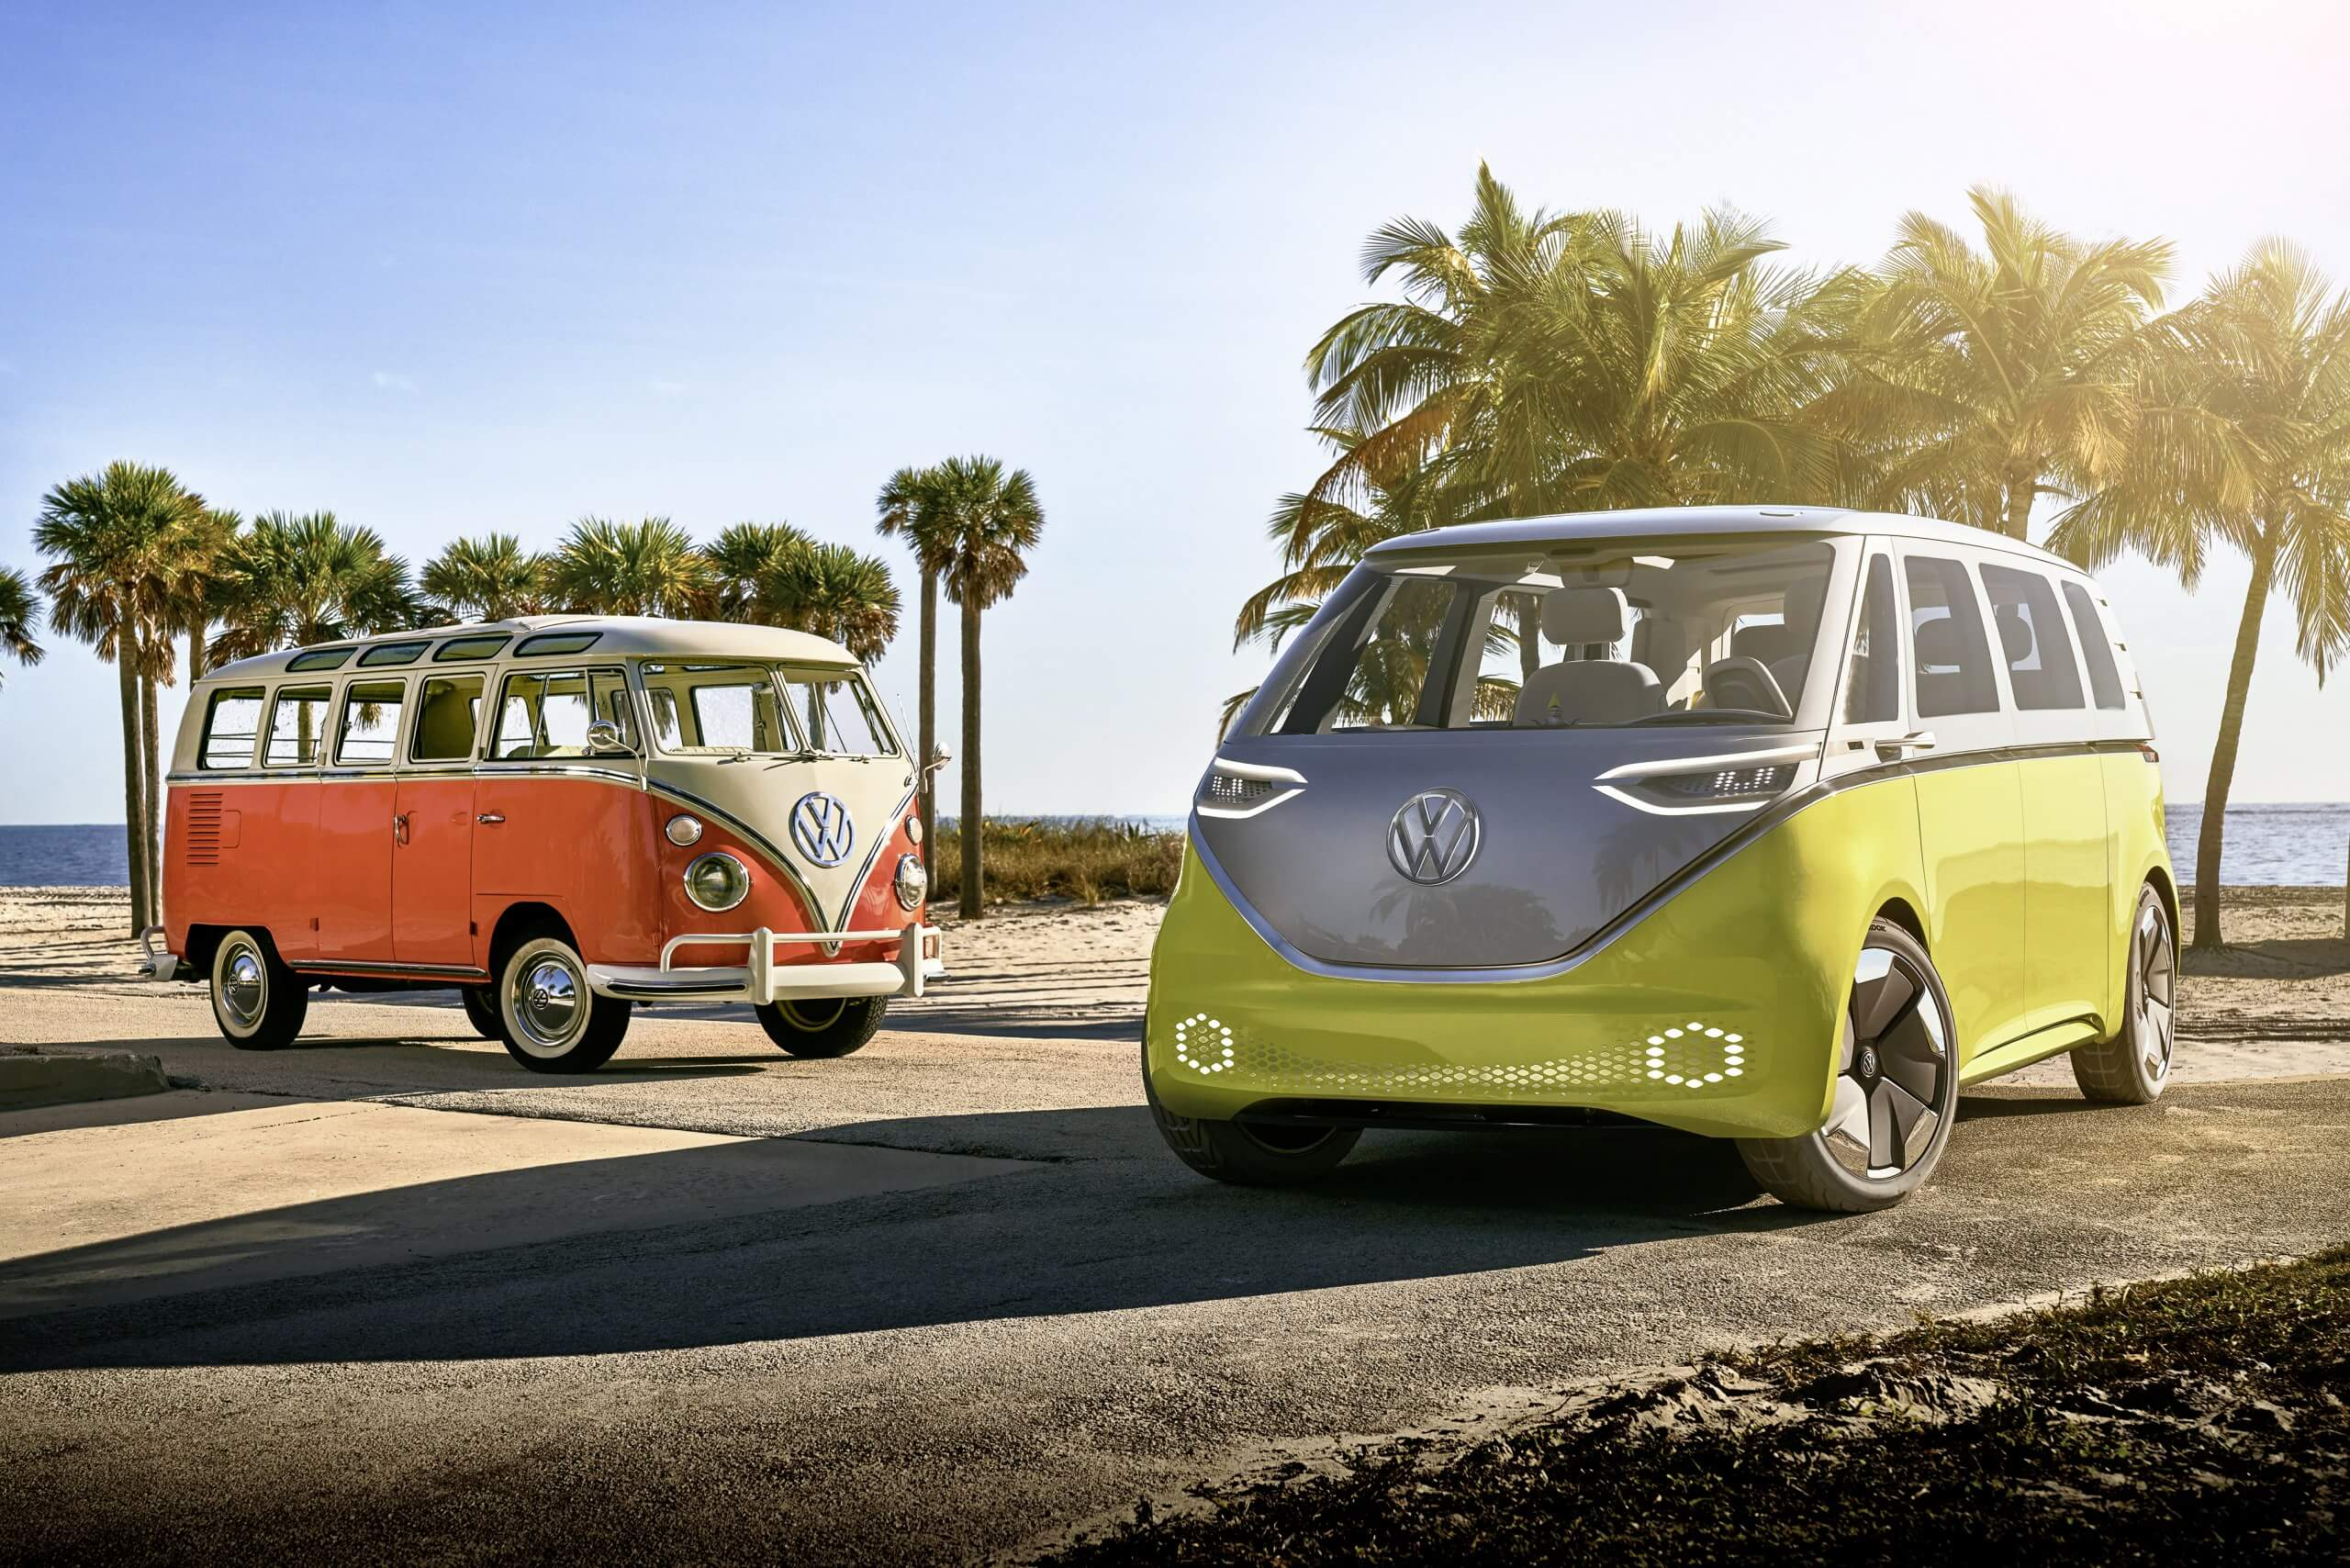 Volkswagen plans to sell one million electric cars per year by 2023